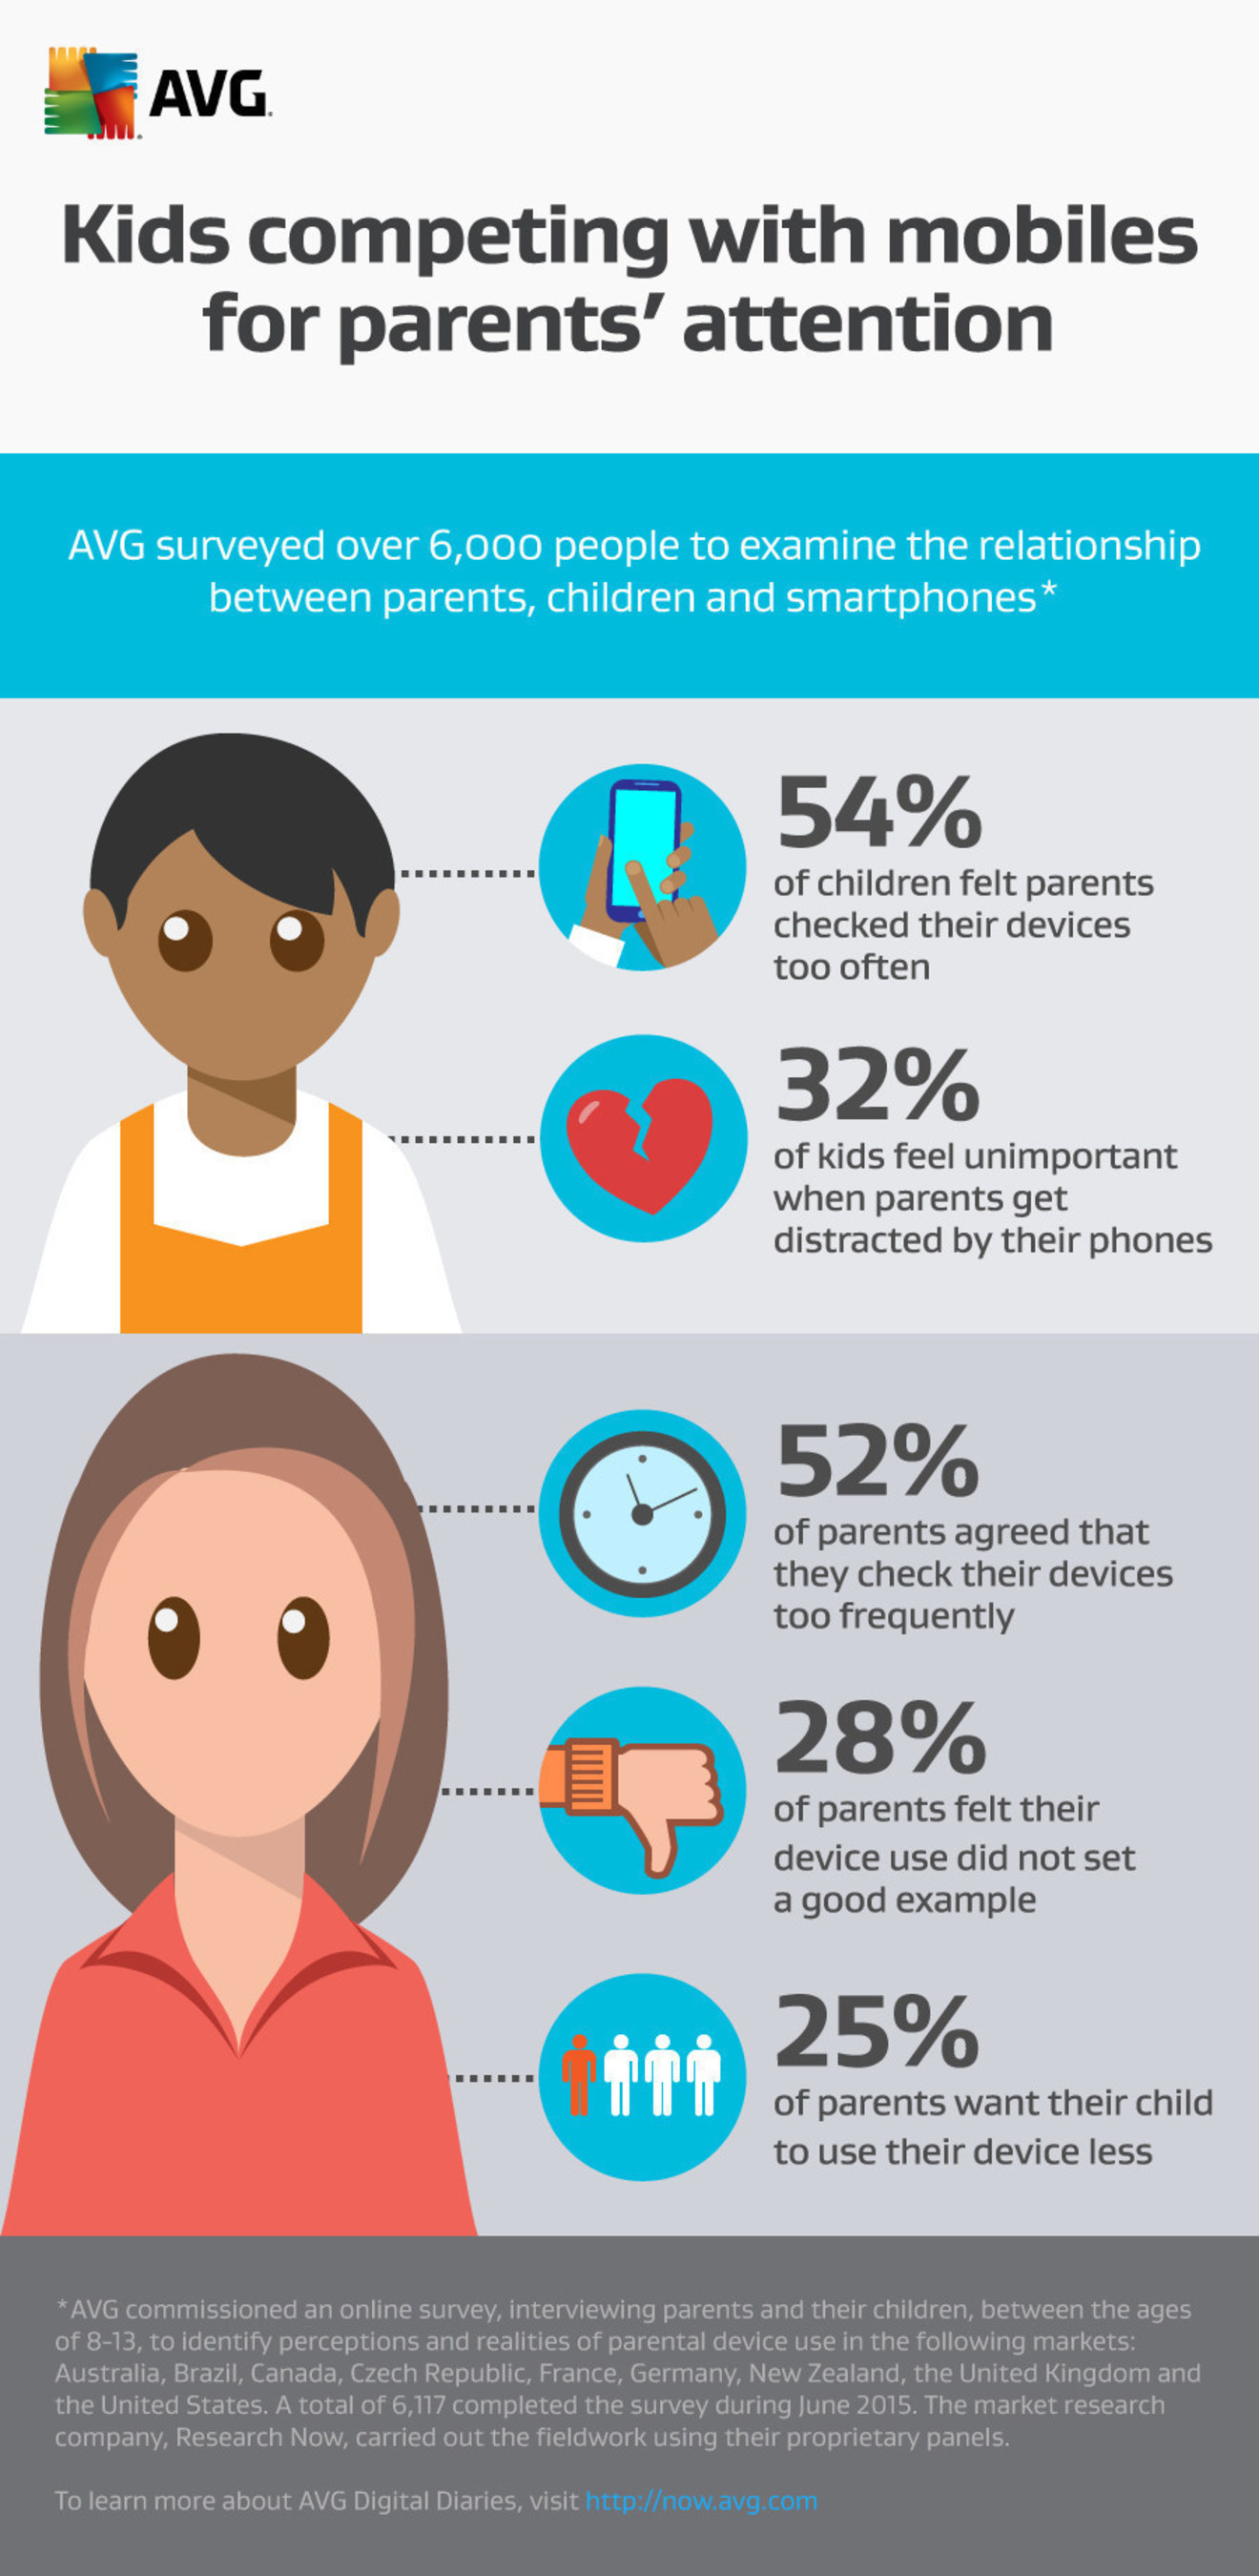 AVG surveyed over 6,00 people to examine the relationship between parents, children and smartphones